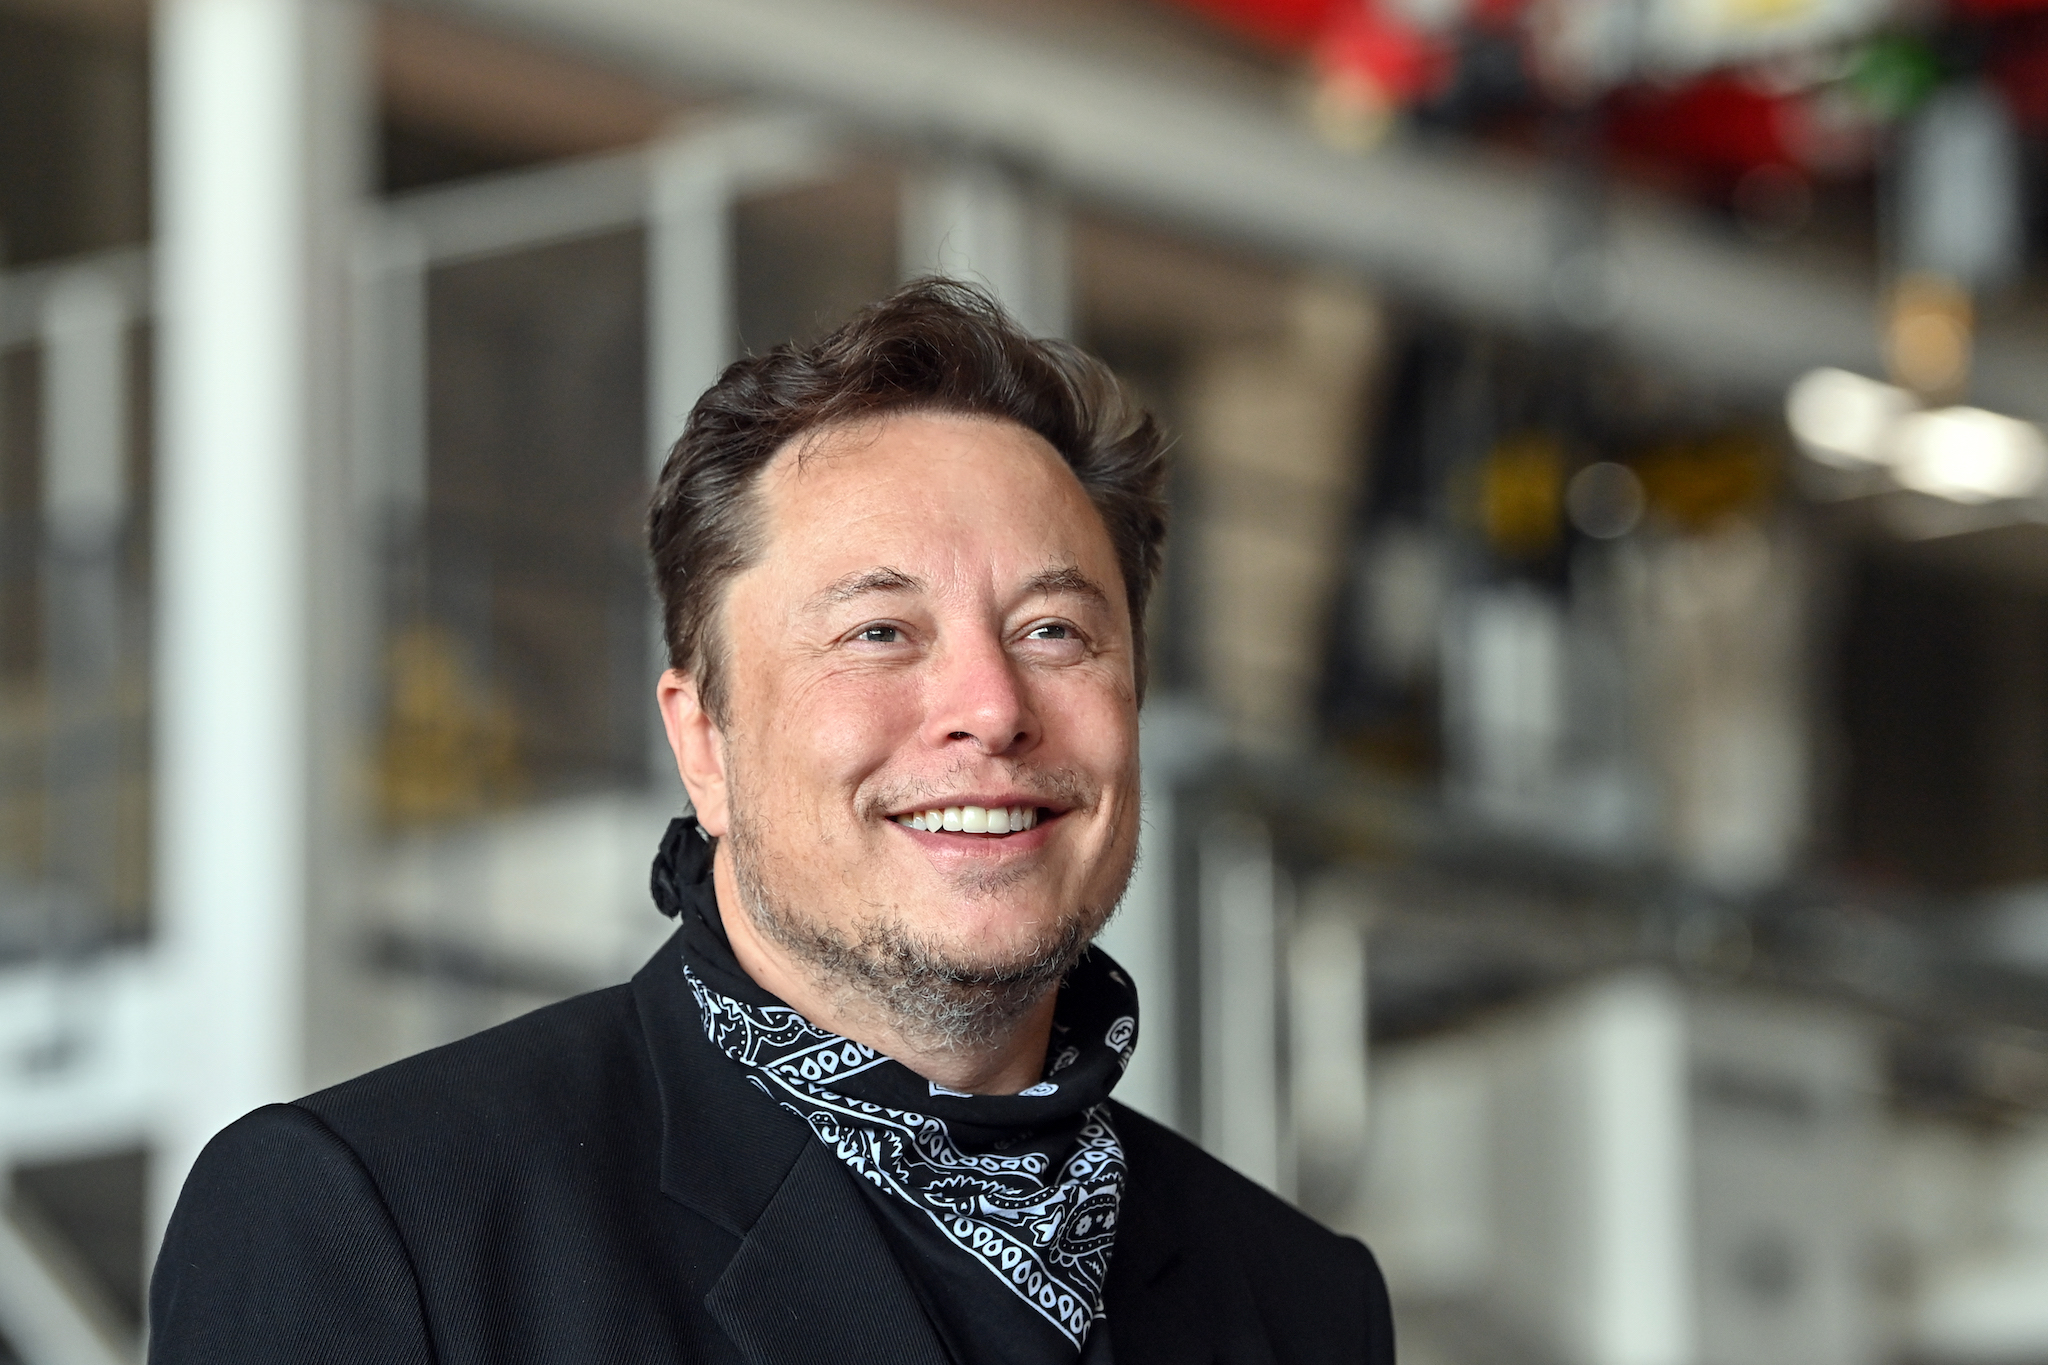 Elon Musk relists Bay Area home, cuts price by more than $5M